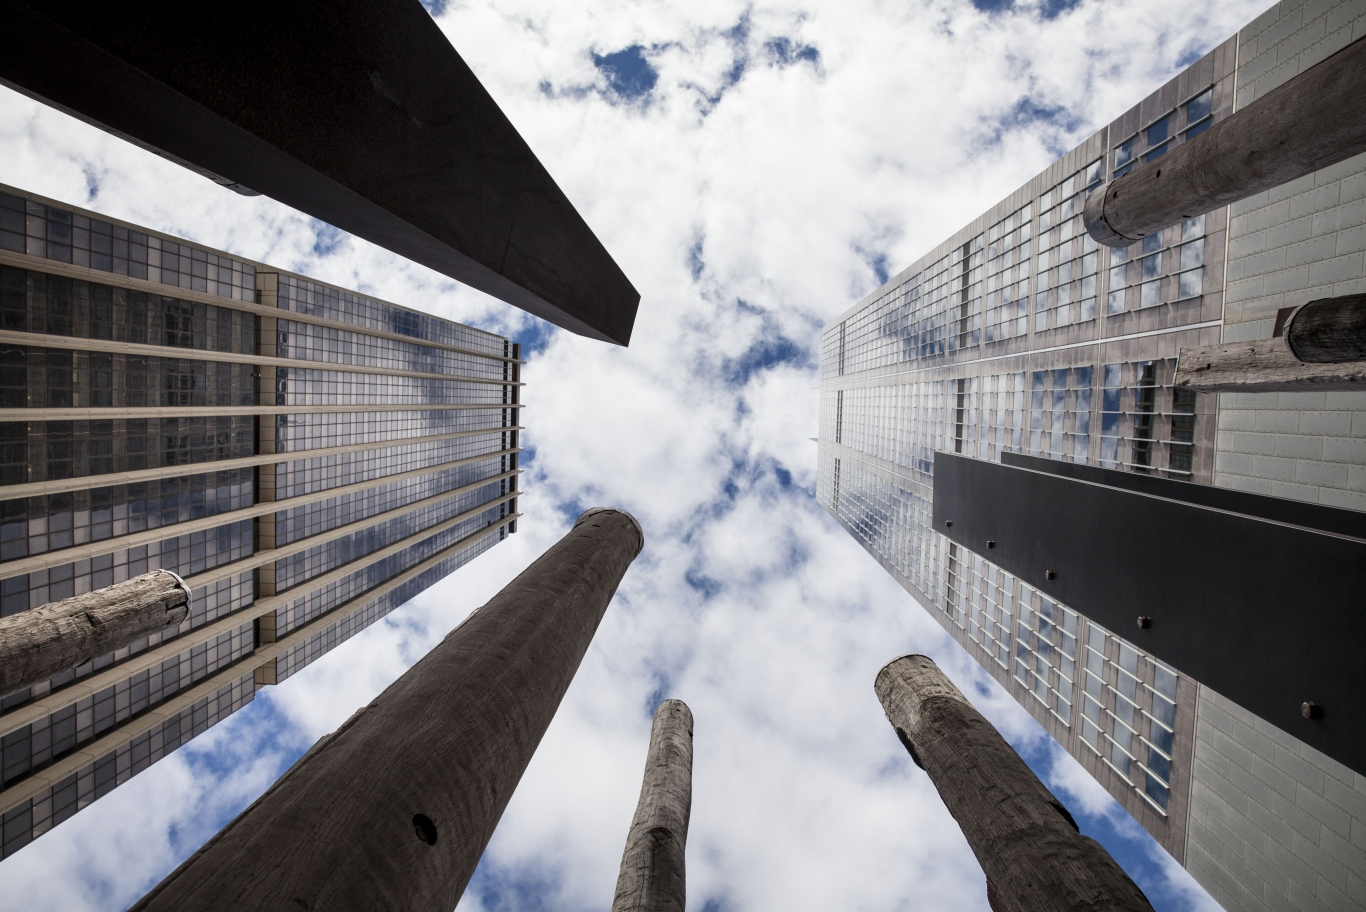 A photo taken looking straight up at the sky. The poles and structures that make up the edge of the trees sculpture appear to stand along side the buildings of the CBD